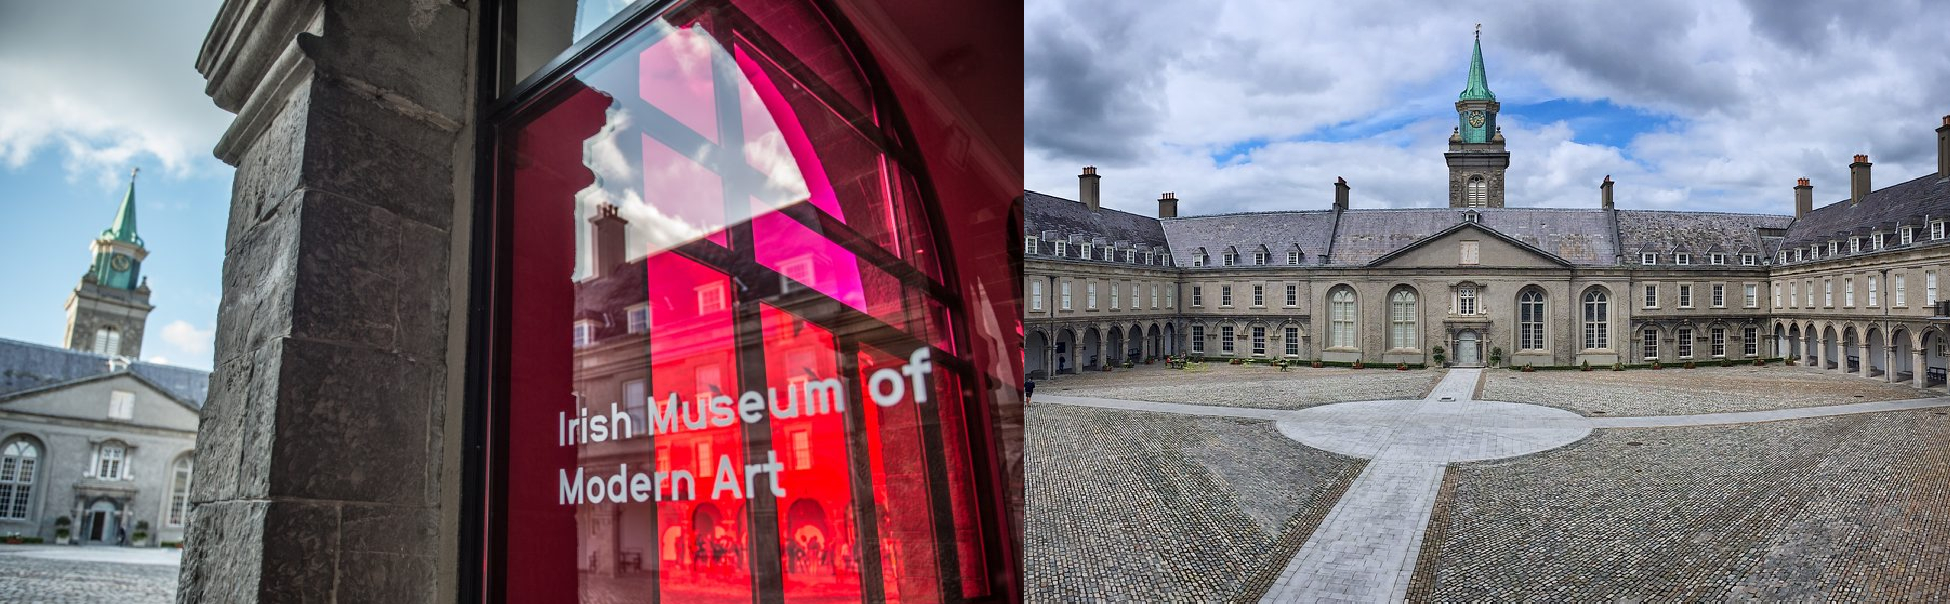 Two images. Firstly, a view outwards towards the courtyard featuring pink vinyl and IMMA branding and secondly, a view of IMMA's North Range building and internal courtyard from the first floor looking down.